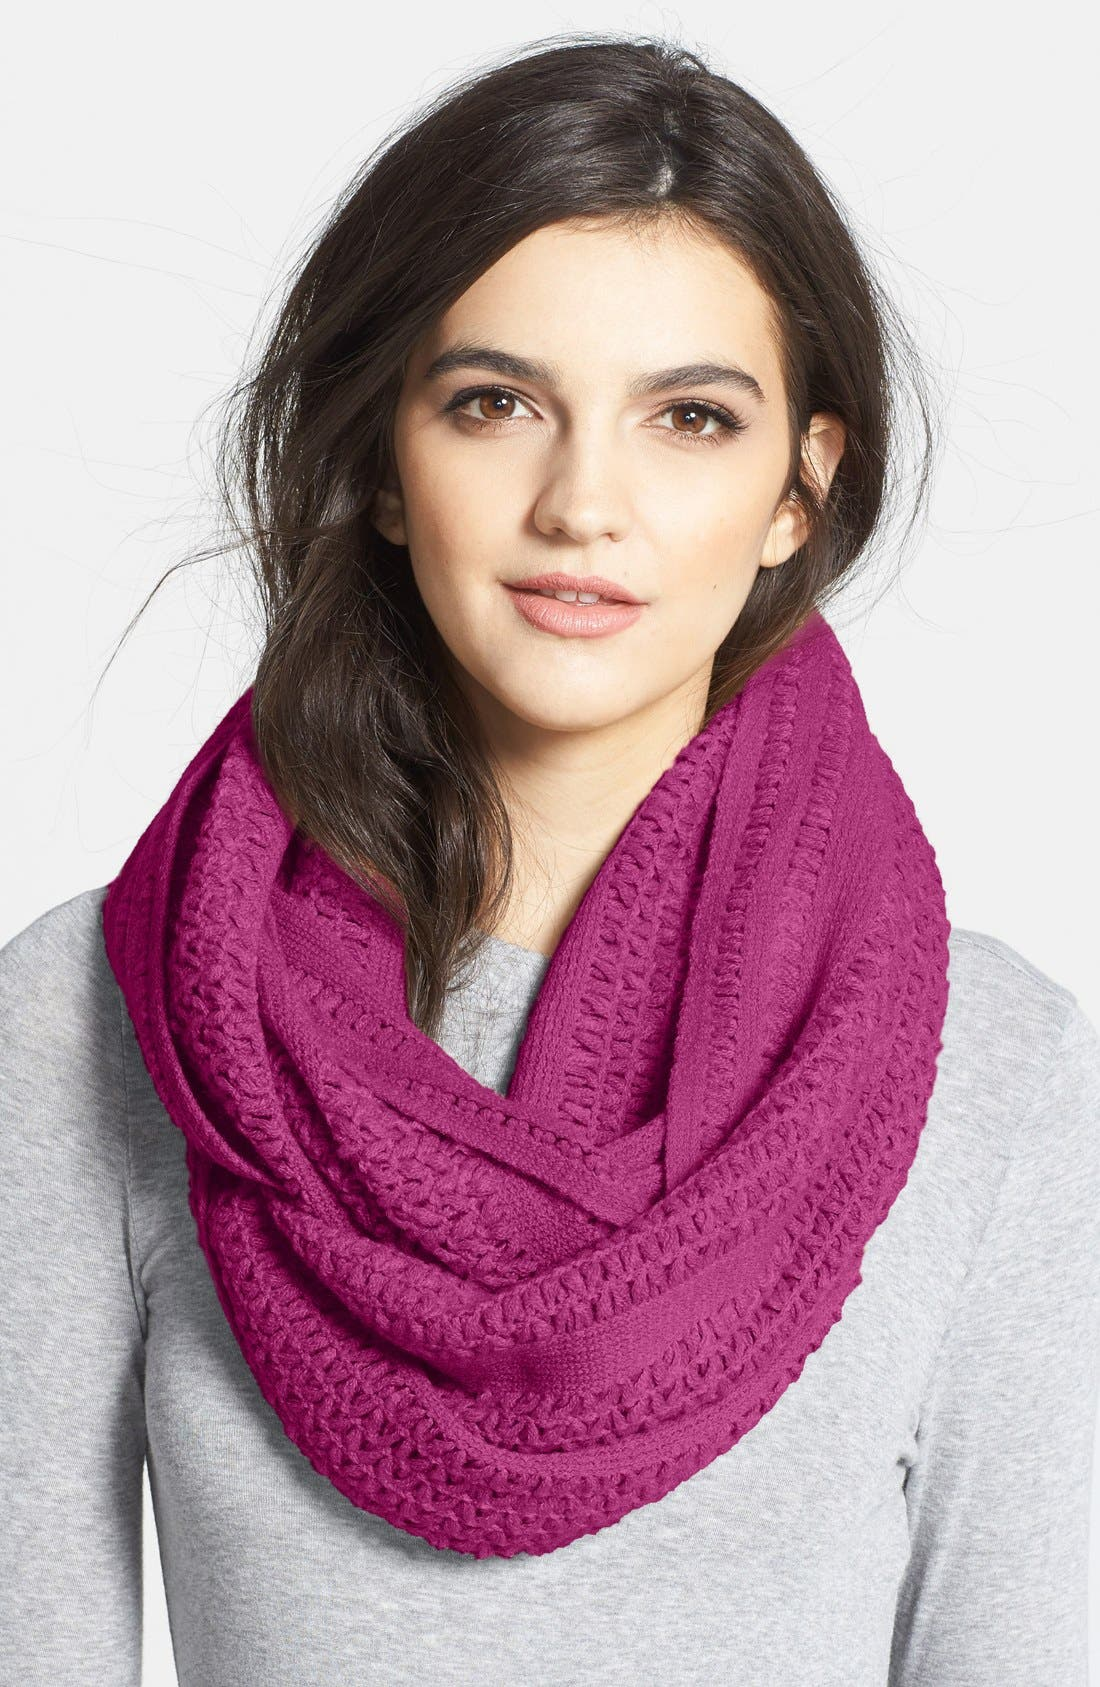 Alternate Image 1 Selected - Collection XIIX 'Cross Stitch' Infinity Scarf